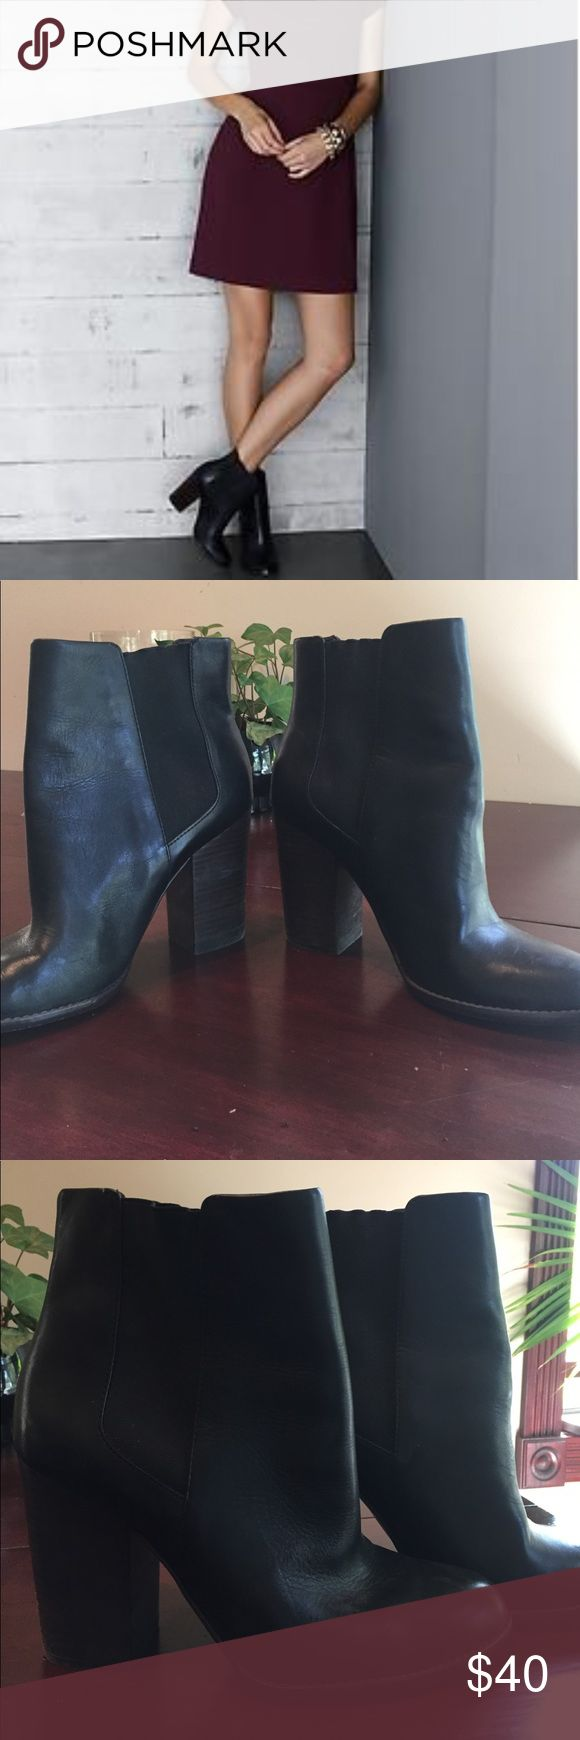 "Banana Republic Melia Chelsea boot sz 10 Great used condition. Some scuffing on wood stacked heel. 4"" heel height black leather with elastic detail. Classic boot that can be dressed up or down. Banana Republic Shoes Heeled Boots"